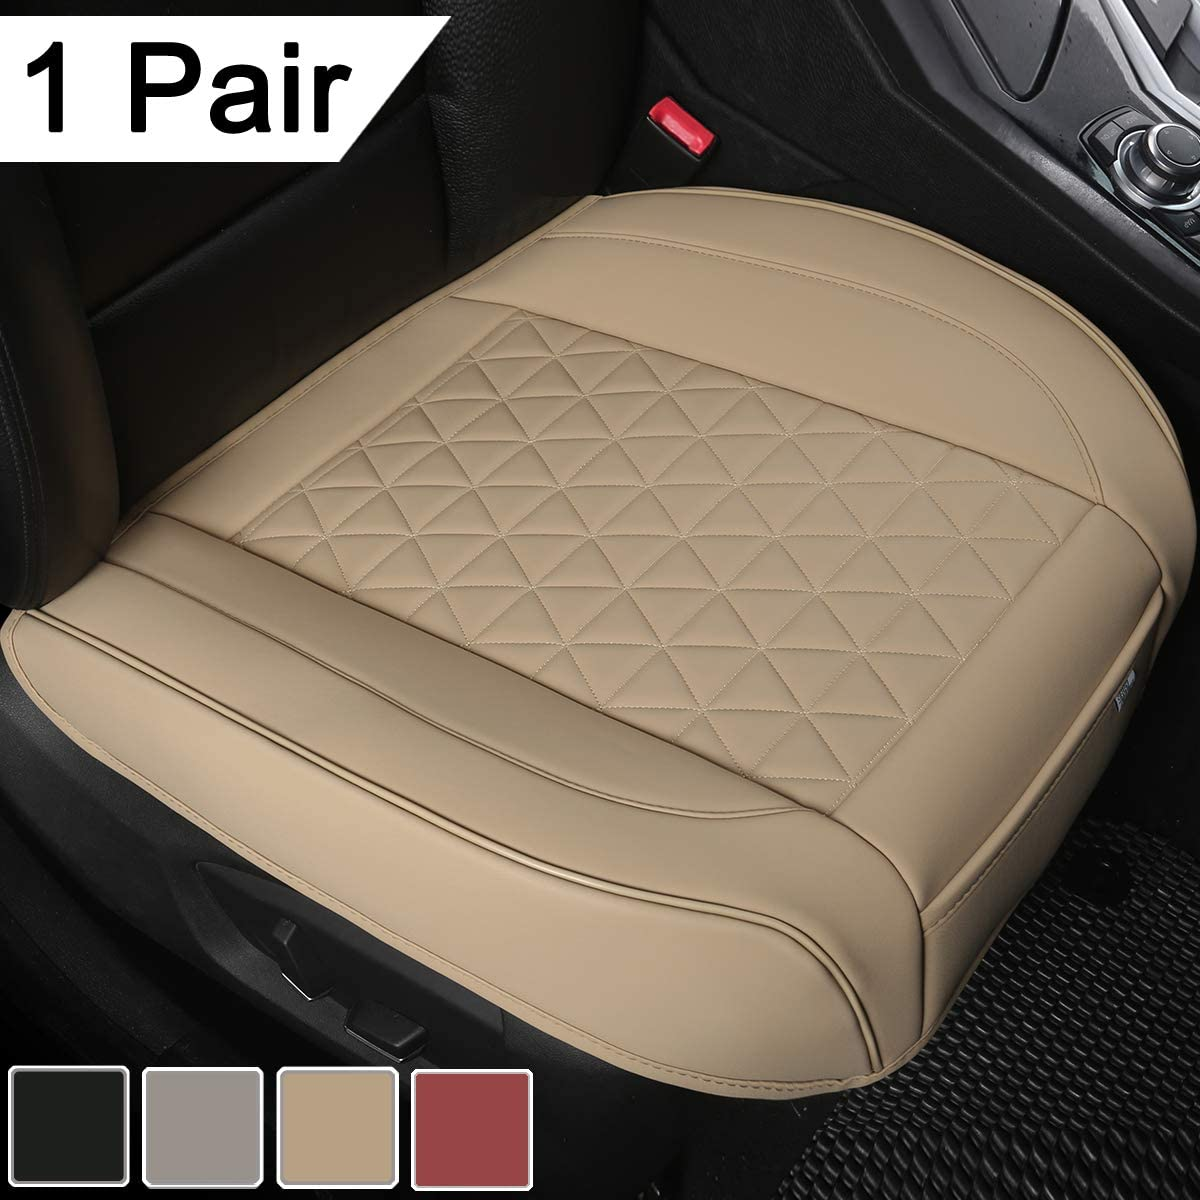 Black Panther 1 Pair Luxury PU Leather Car Seat Covers Protectors for Front Seat Bottoms, Compatible with 90% Vehicles (Sedan SUV Truck Minivan) - 21.26×20.86 Inches, Beige